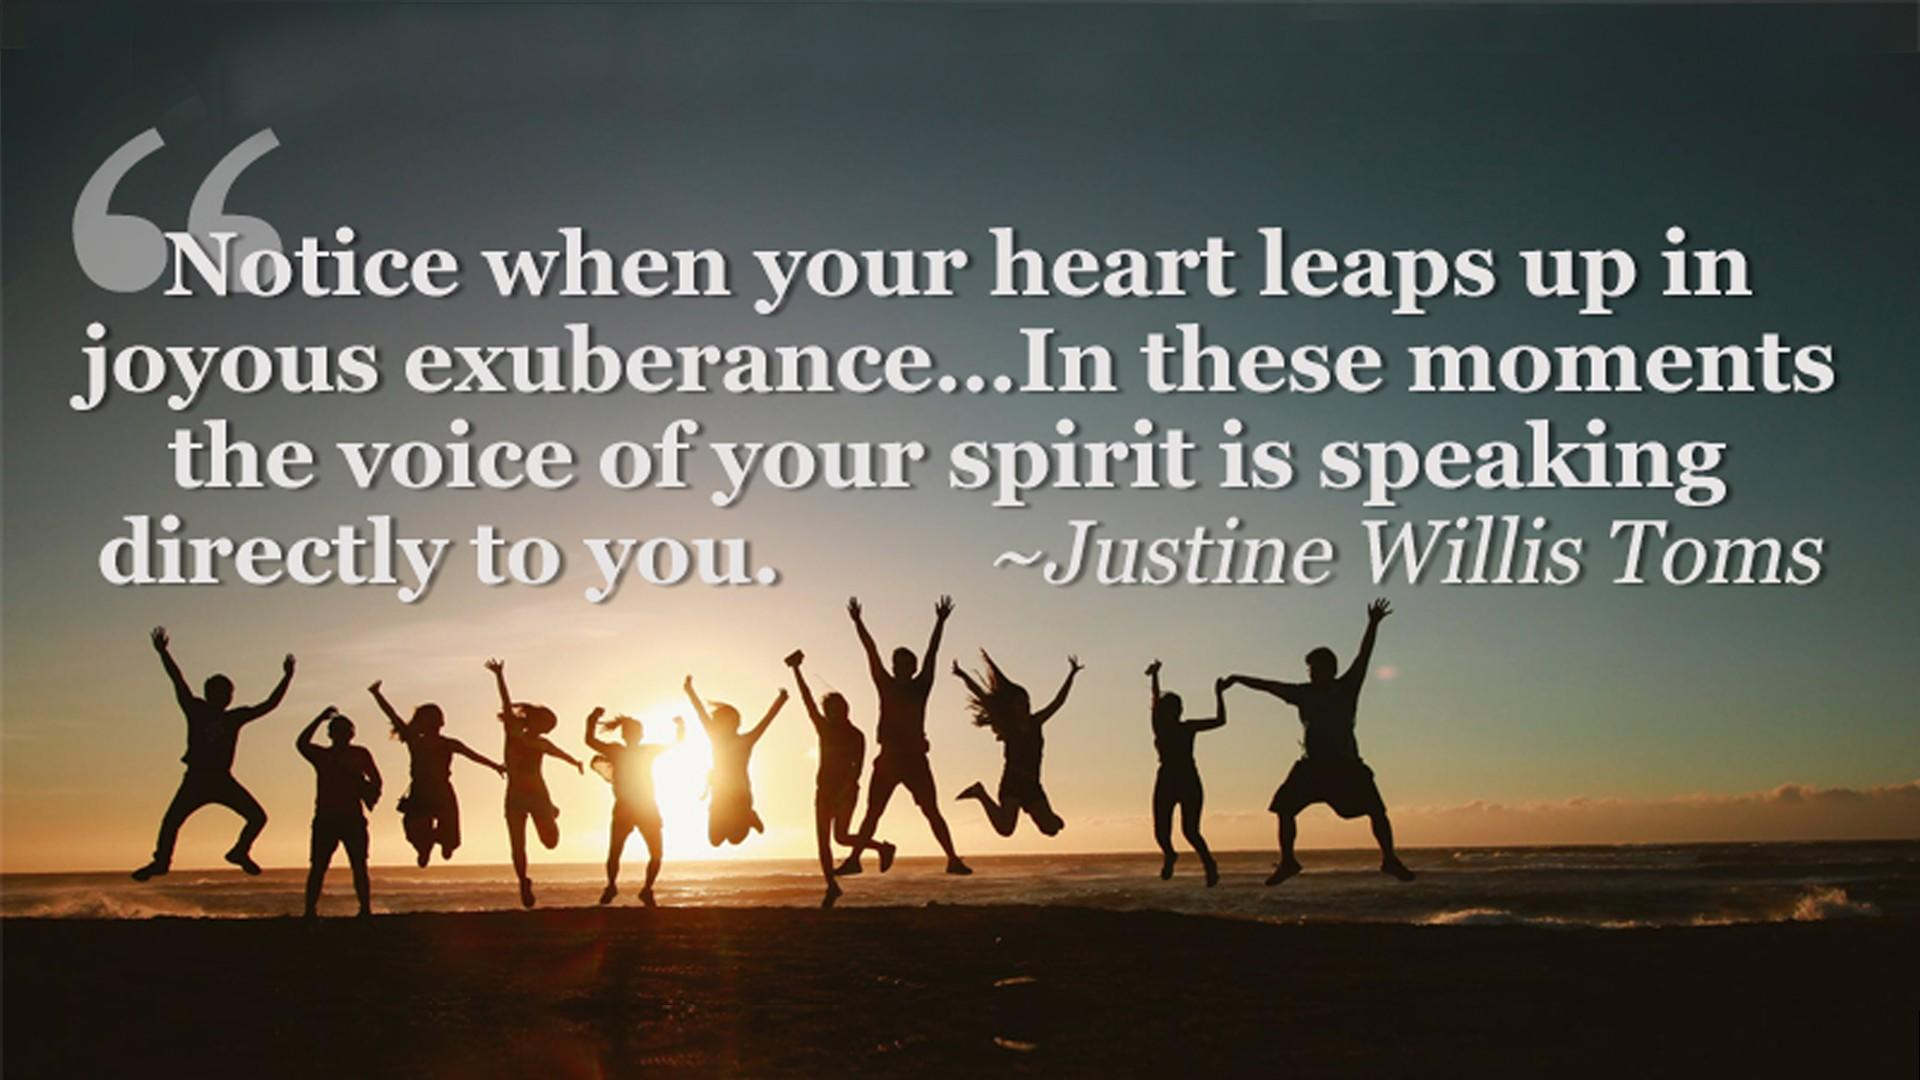 Justine Willis Toms Quote - Notice when your heart leaps up in joyous exuberance…In these moments the voice of your spirit is speaking directly to you